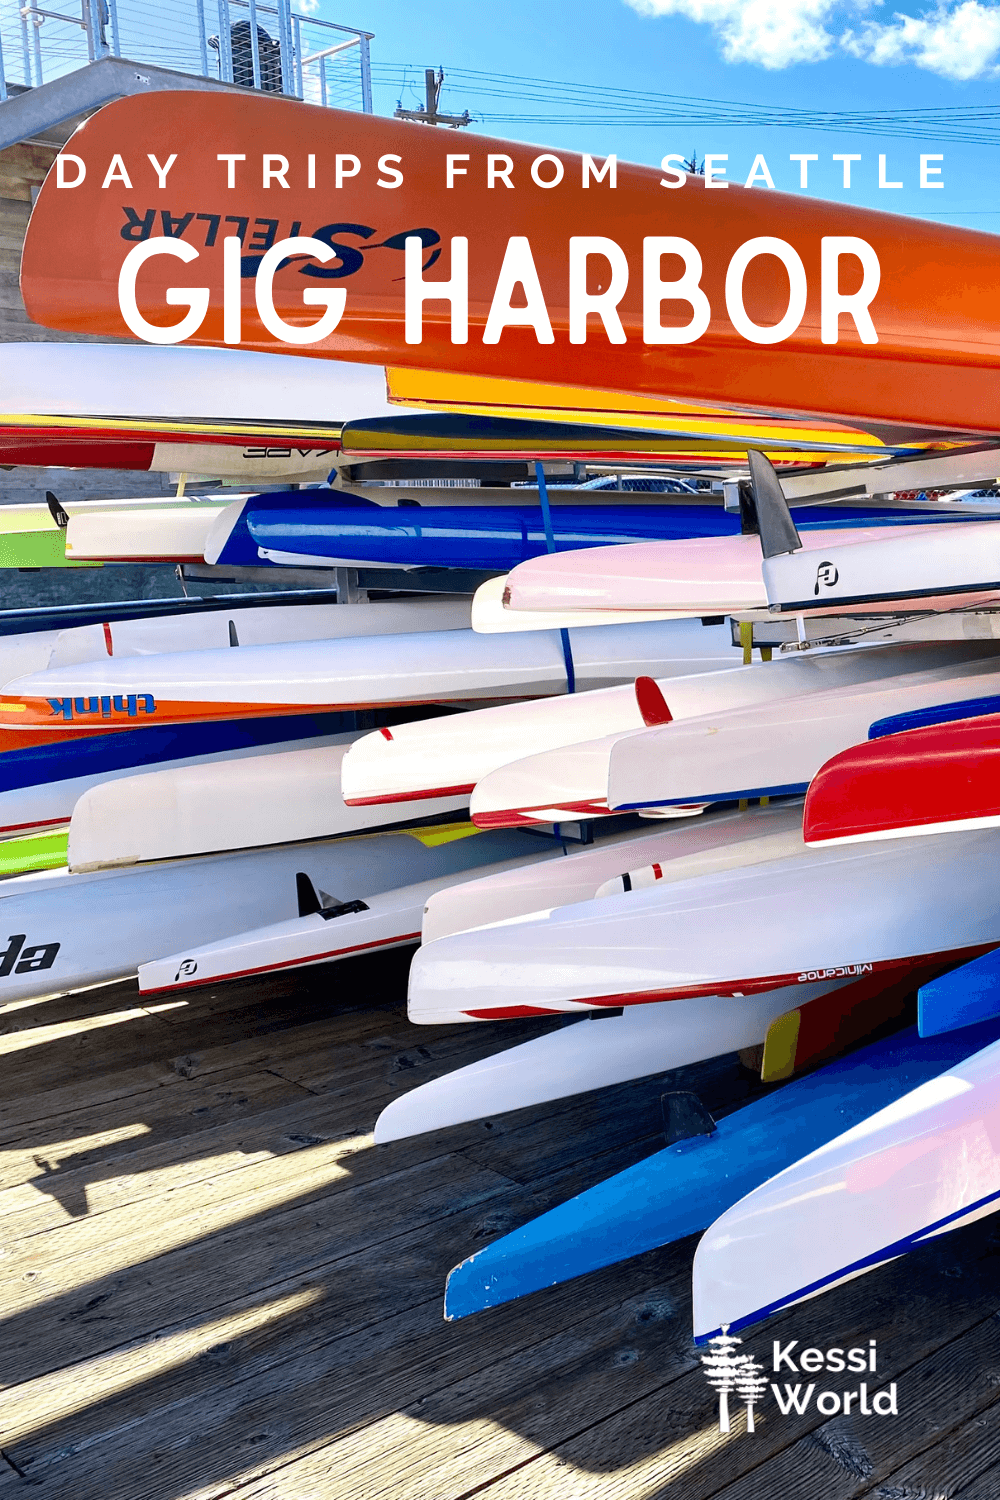 """This Pinterest pin displays white letters that read """"day trips from Seattle"""" and highlights Gig Harbor. The photo shows a storage rack for hundreds of sea kayaks of various colors. The sky above is blue."""